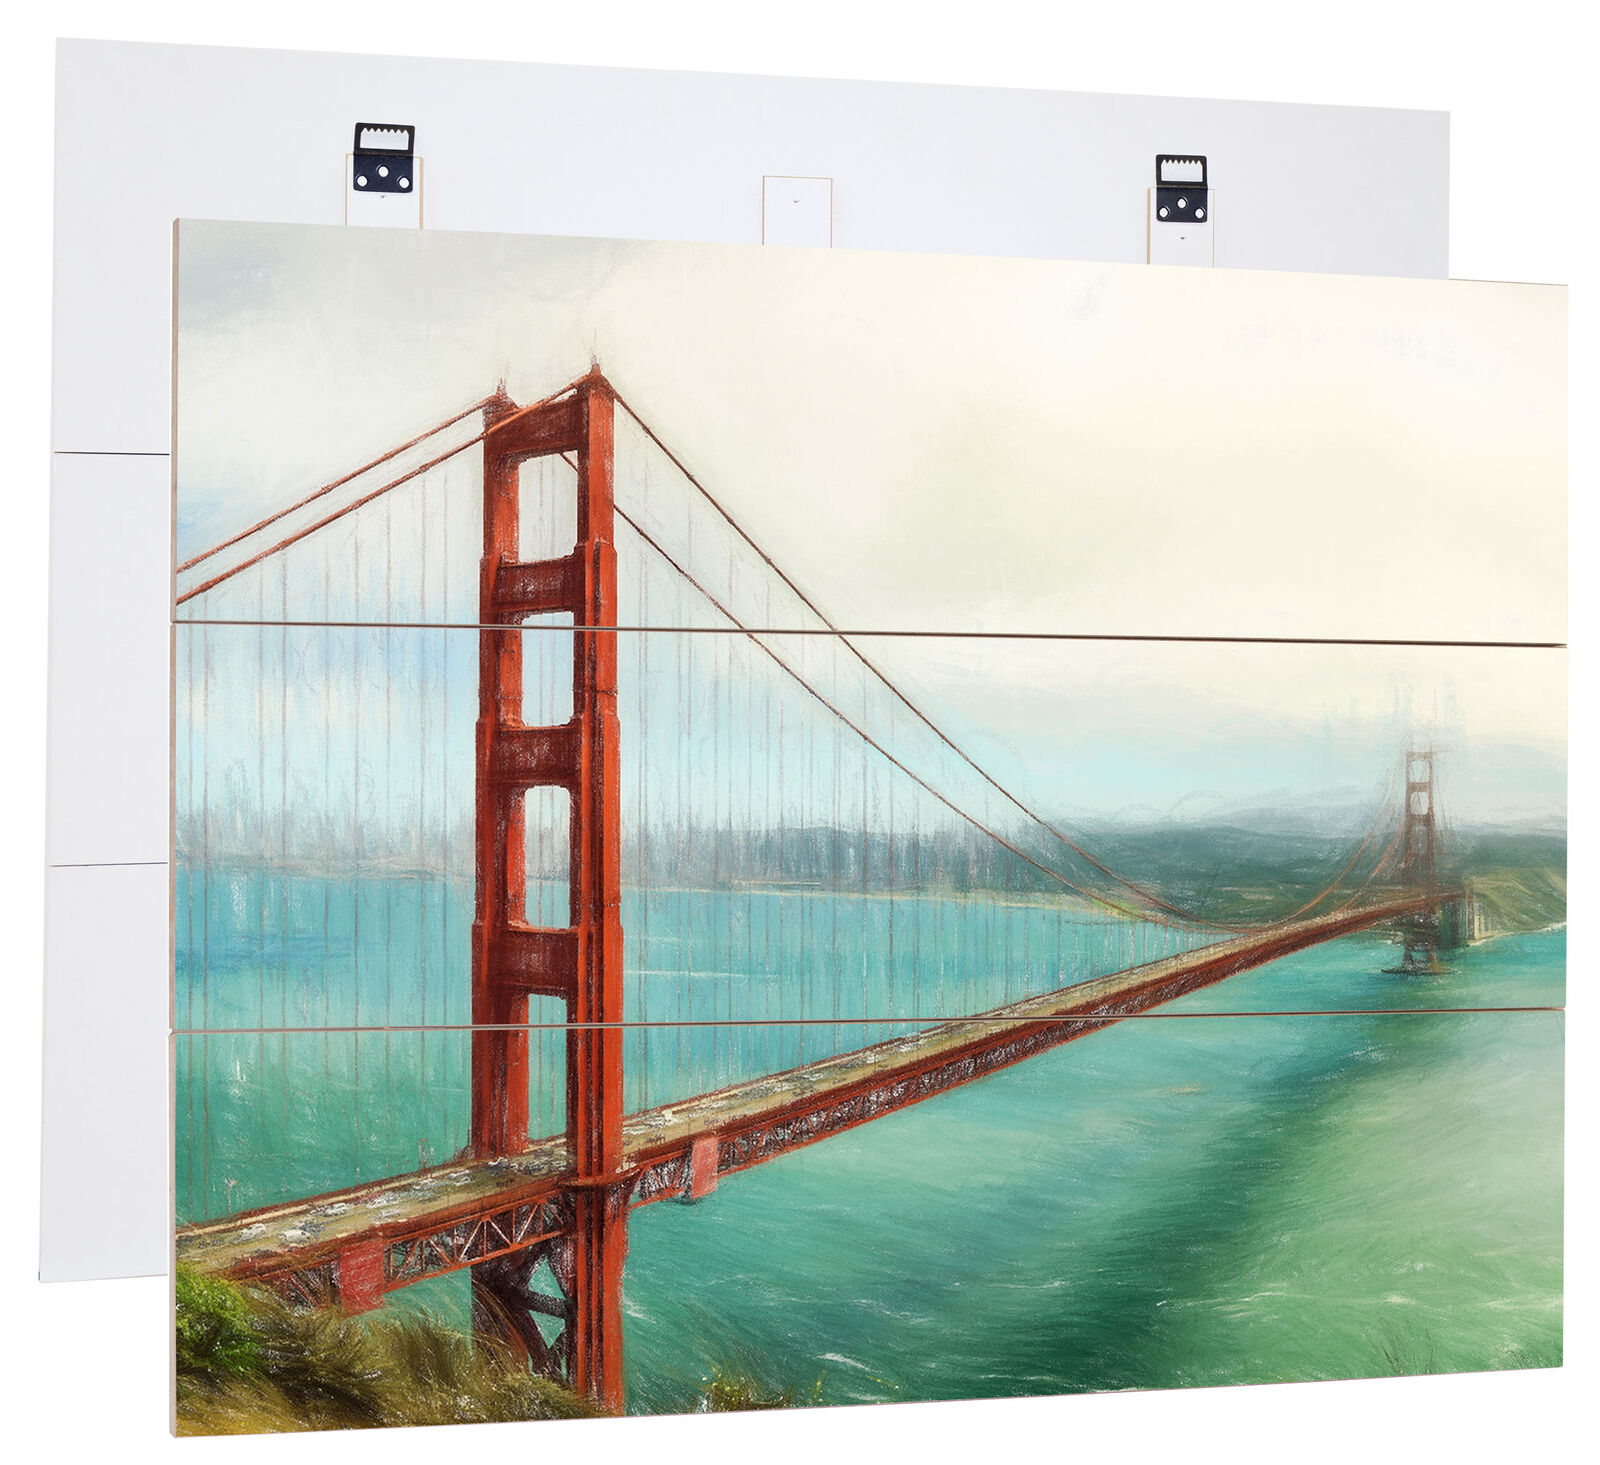 Pont Du oren Gate en San Francisco - Authentique Mdf-Holzbild Bretterlook,